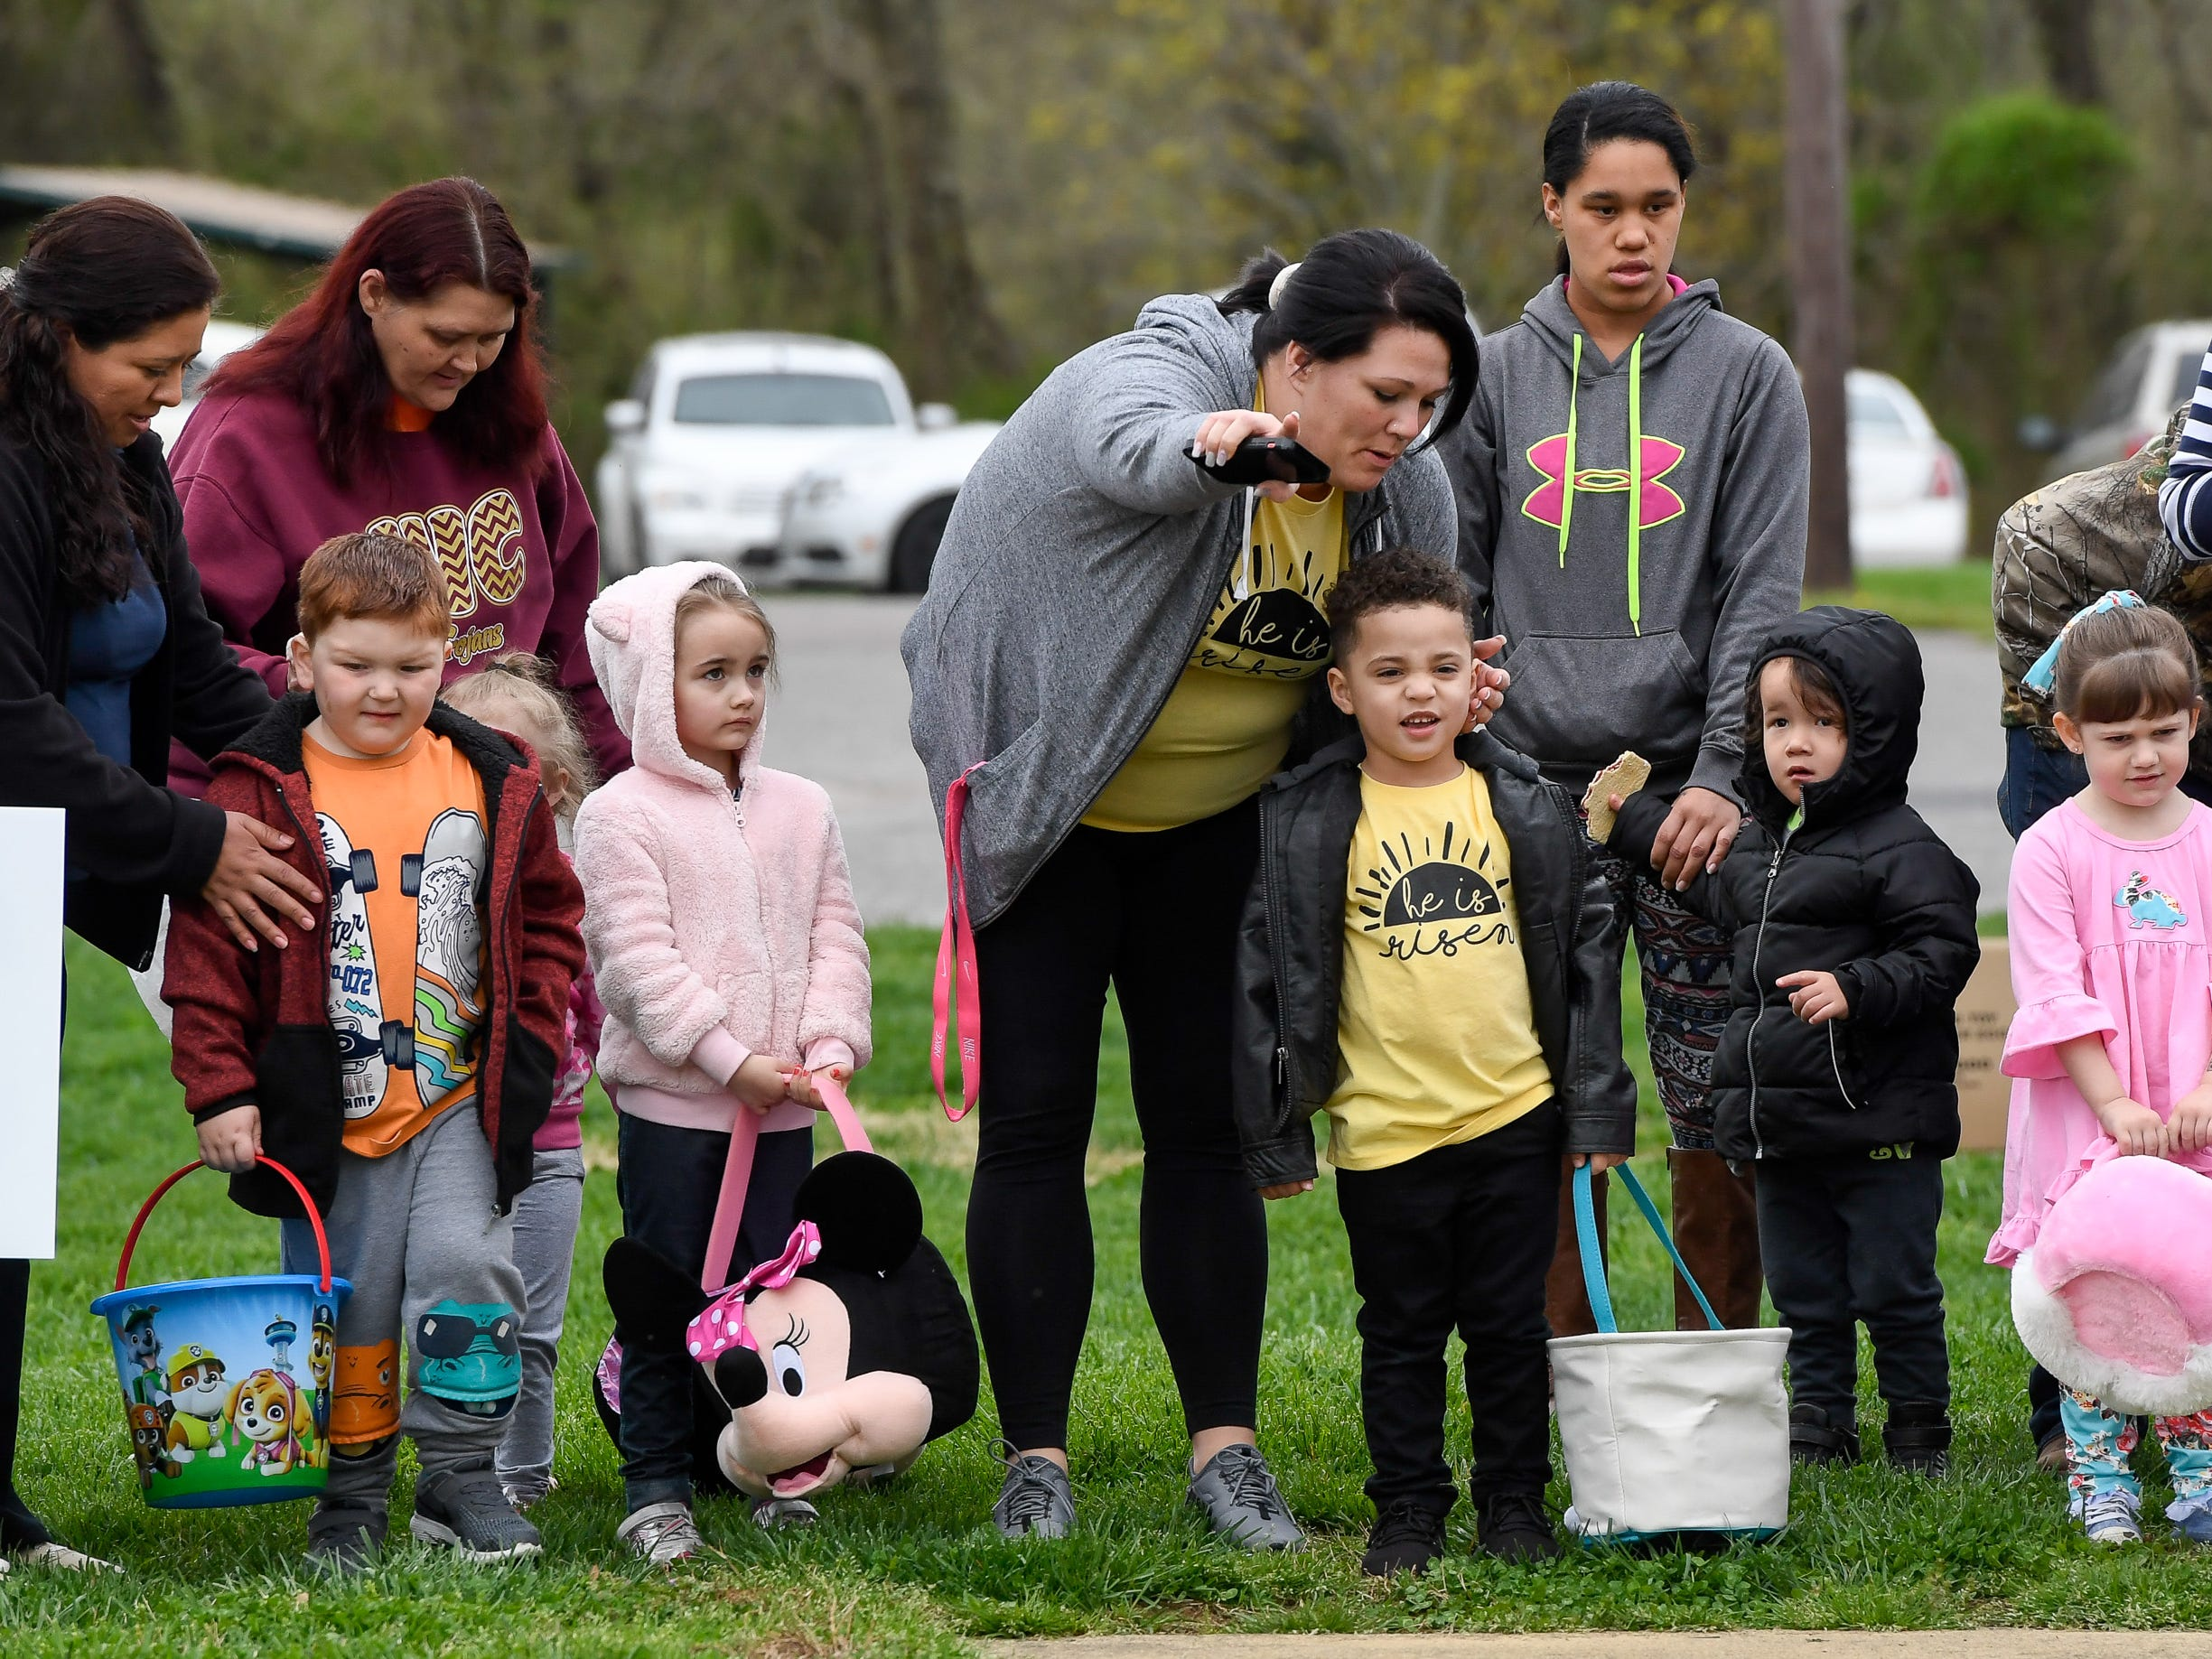 Egg hunters receive last minute instructions as children prepare to scramble for the more than 15,000 eggs hidden away in Community Park for the City of Henderson Parks and Recreation Department's annual Easter Egg Hunt Saturday, April 13, 2019.